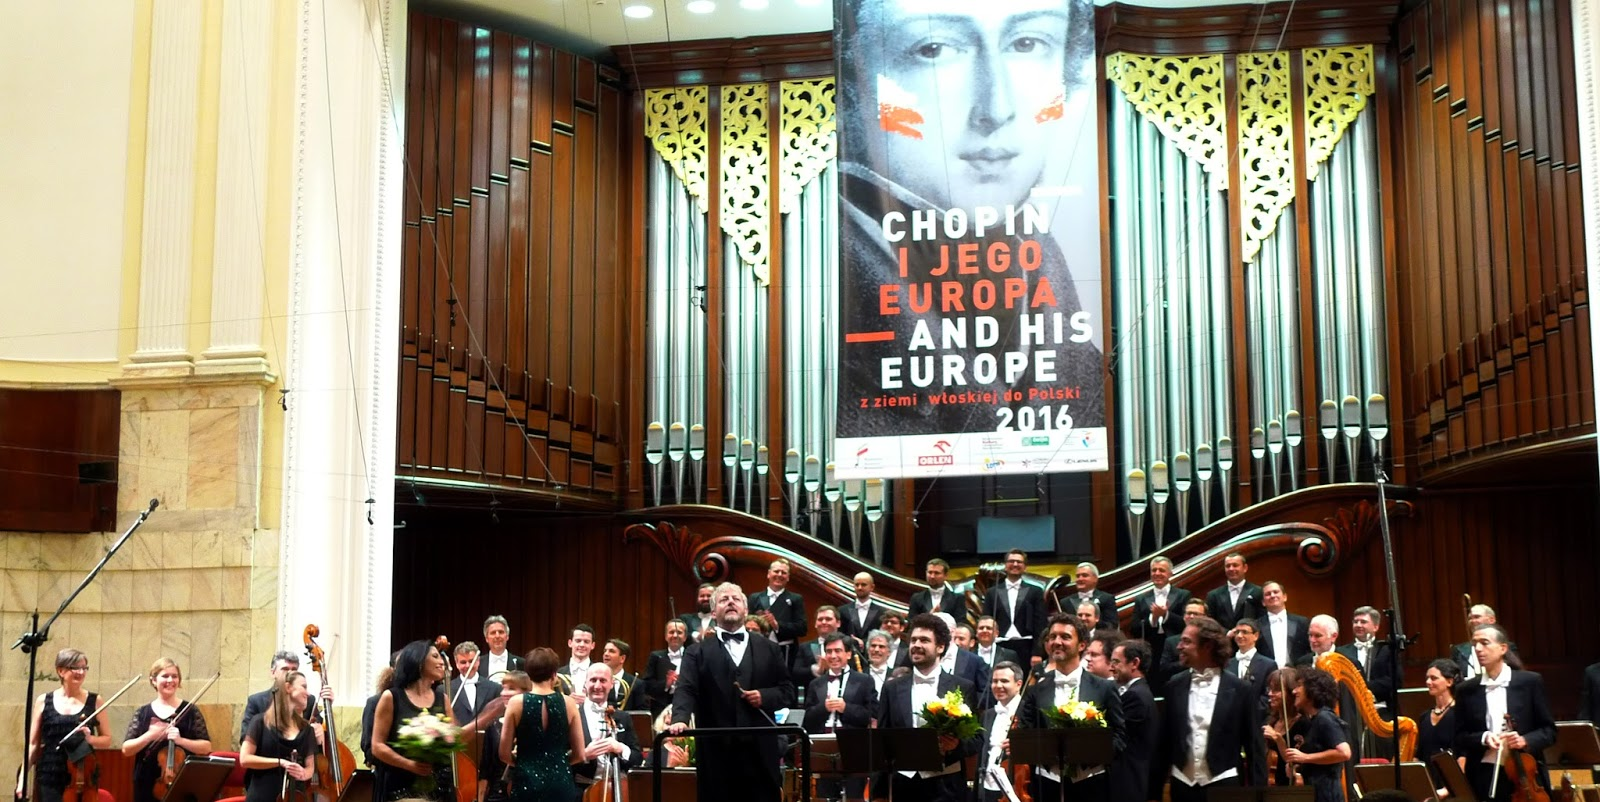 12th Chopin And His Europe Festival Chopin I Jego Europa Warsaw